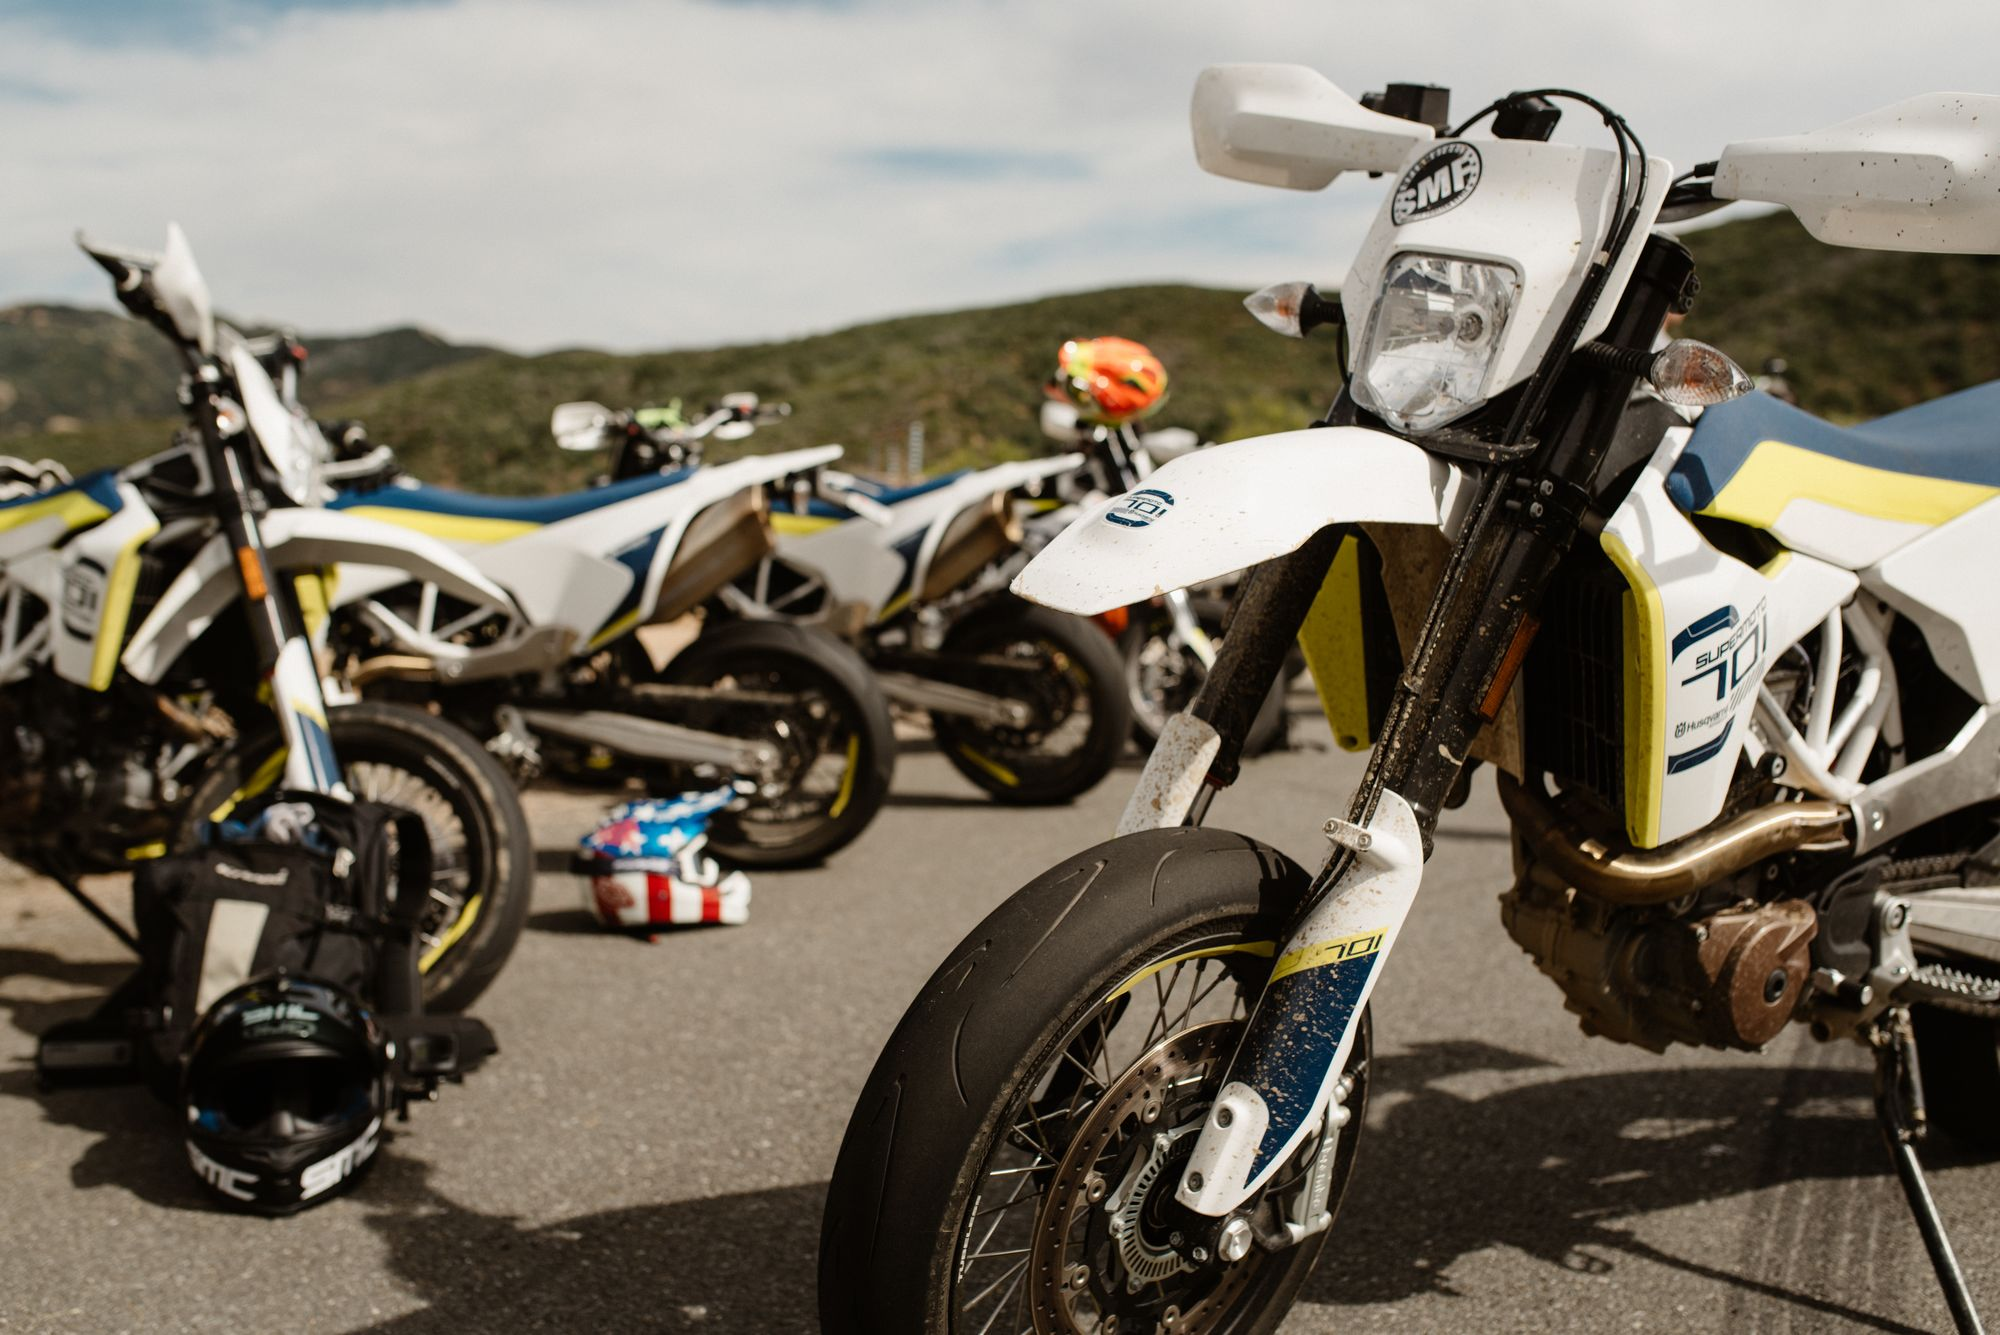 Husqvarna S 701 Supermoto May Be The Very Best Street Bike